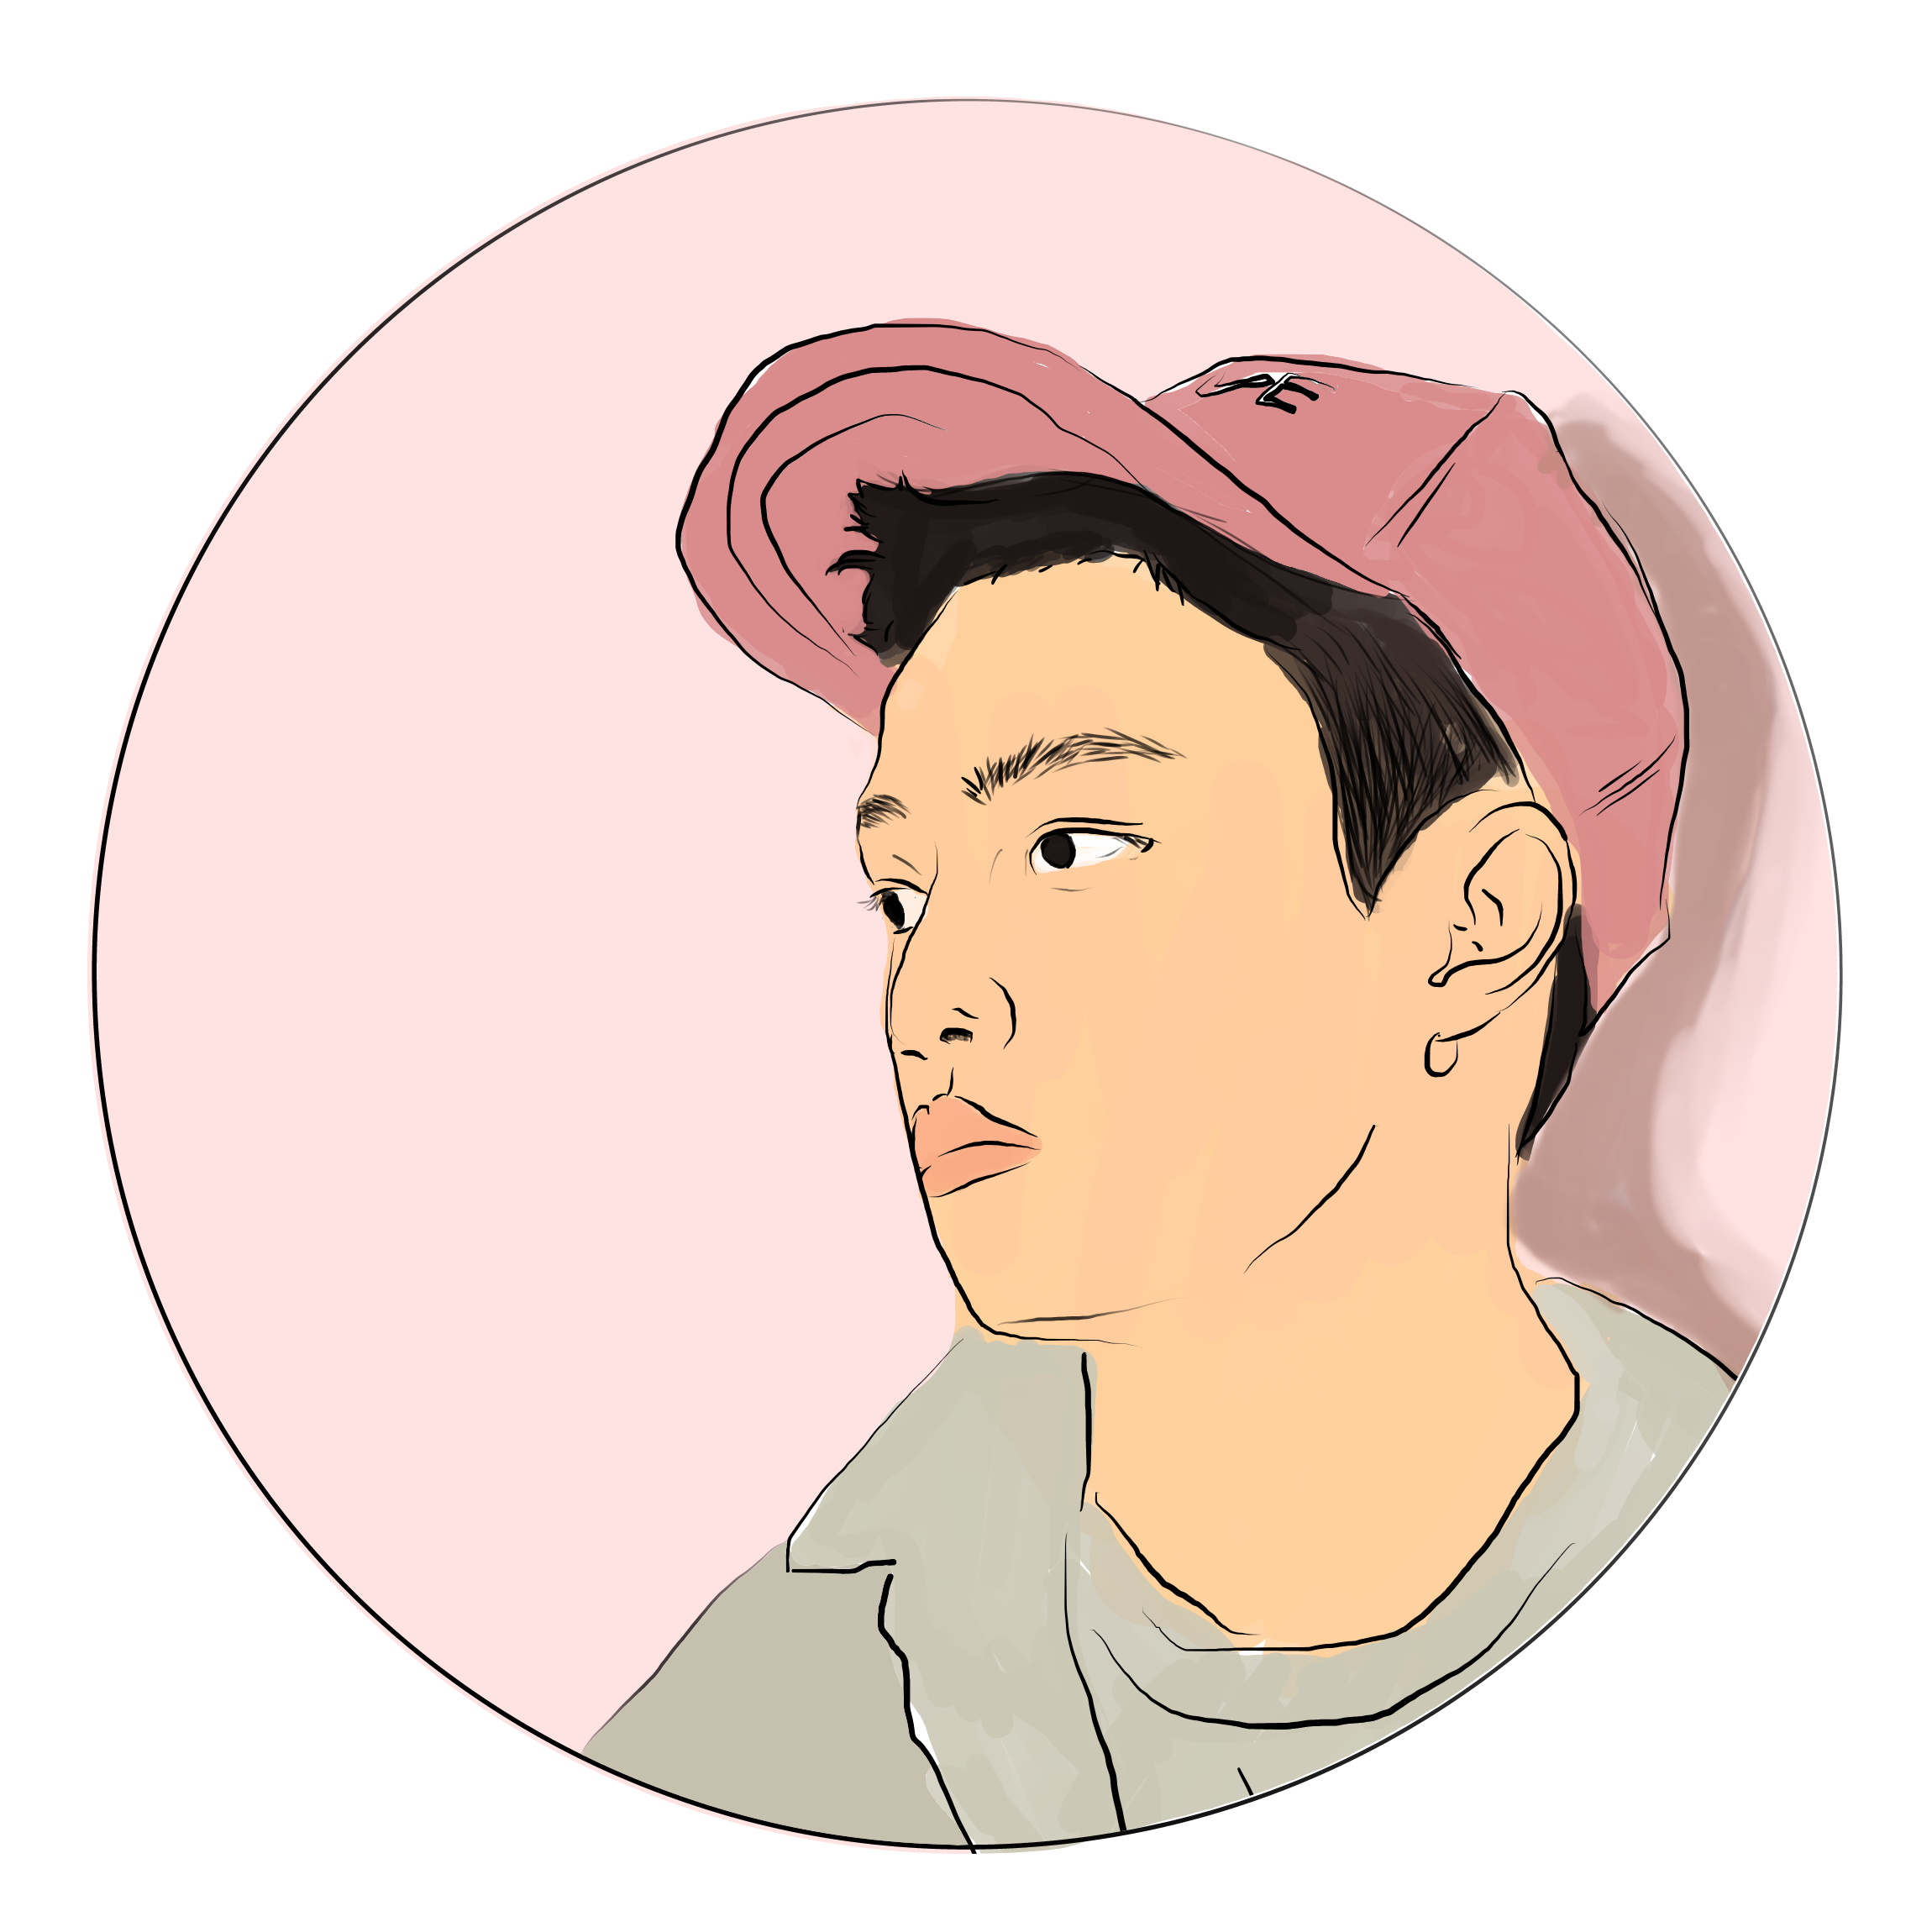 A Circle Sticker Design Of Kyungsoo From The Group Exo Exo Exol Suho Kai Chanyoel Lay Jongin Kpopfanart Exo Stickers Kpop Fanart Digital Illustration